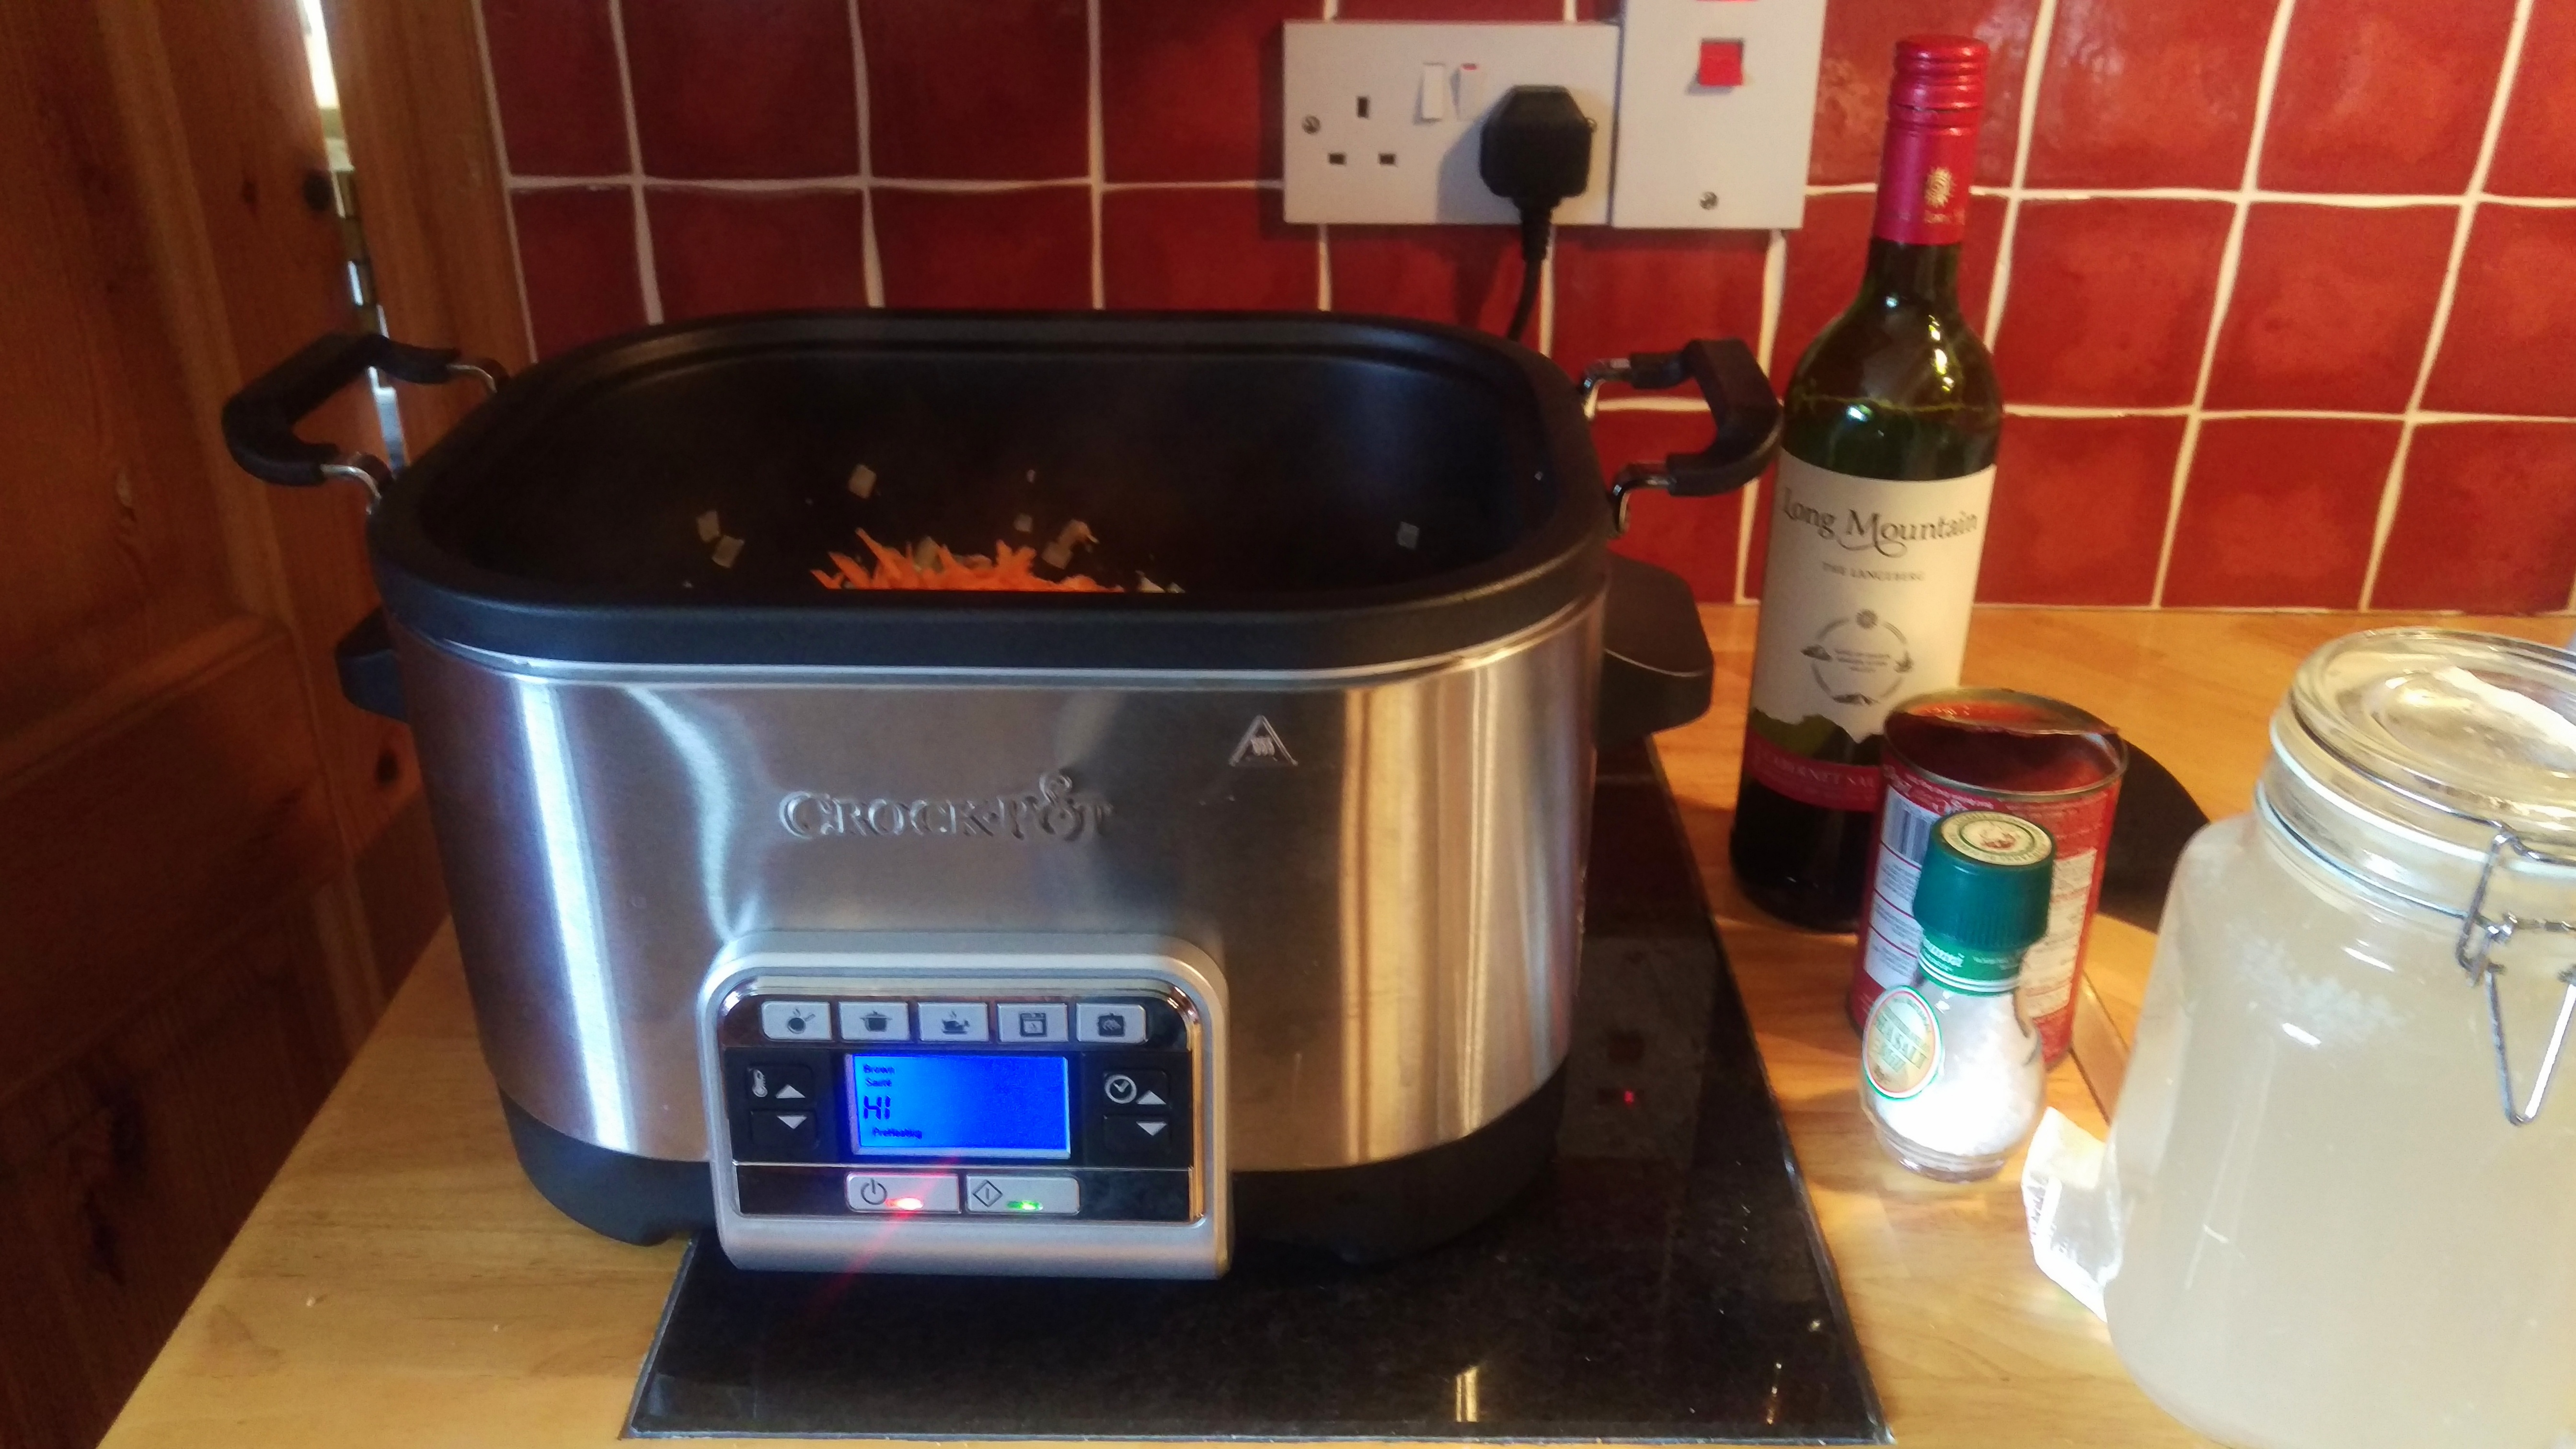 Mince two ways: burgers and slow cooked